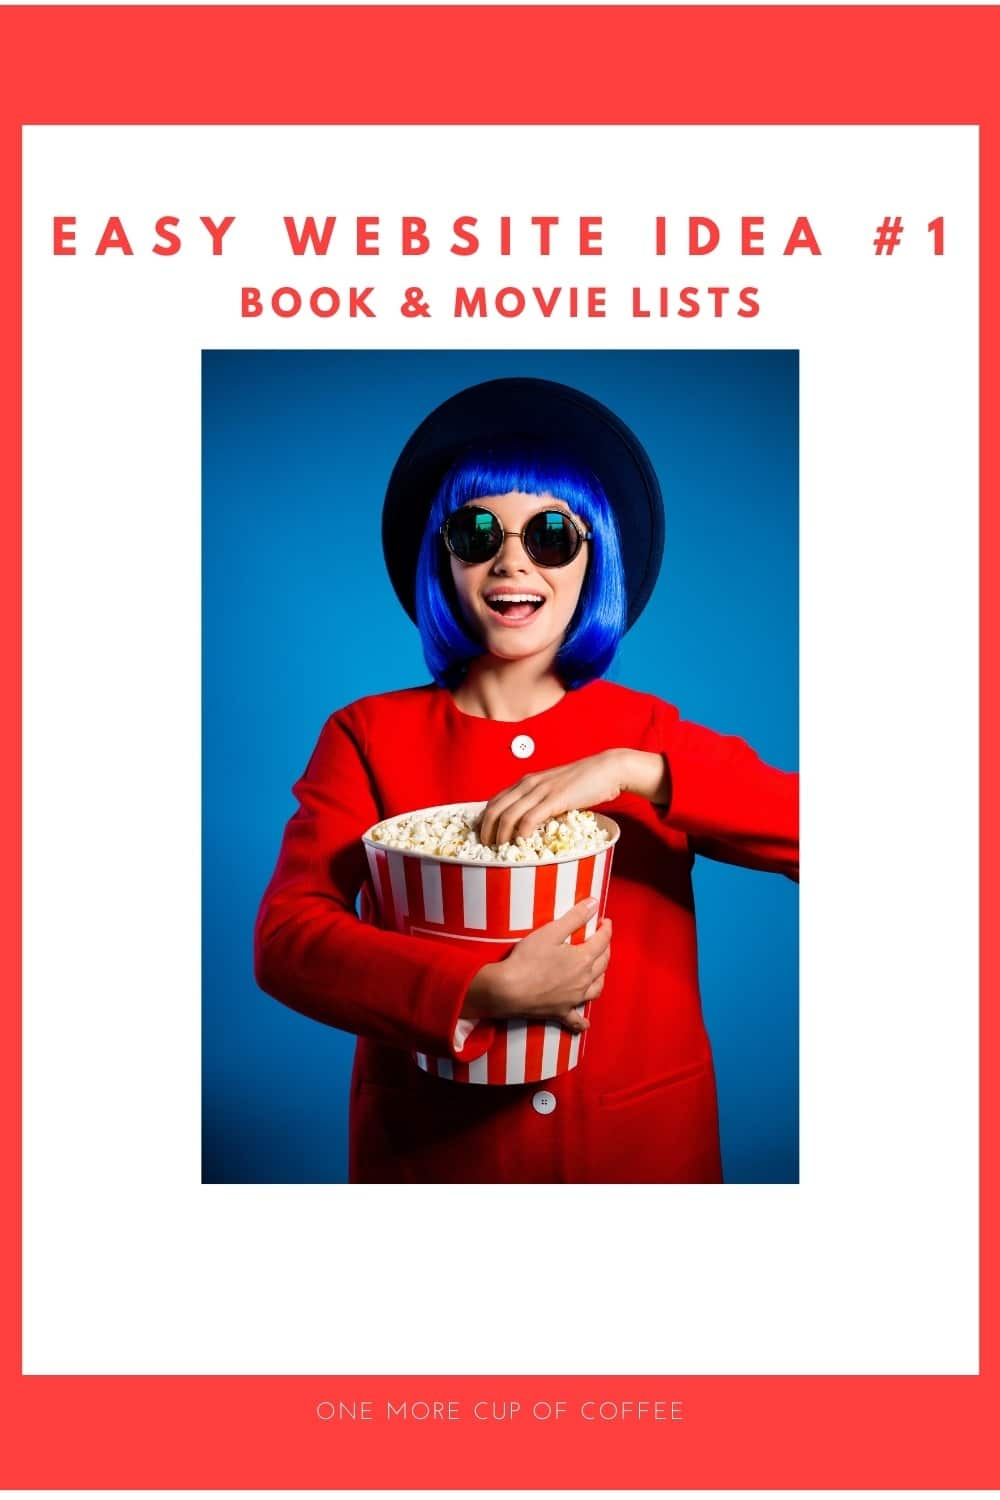 woman in red dress and blue hair eating movie popcorn